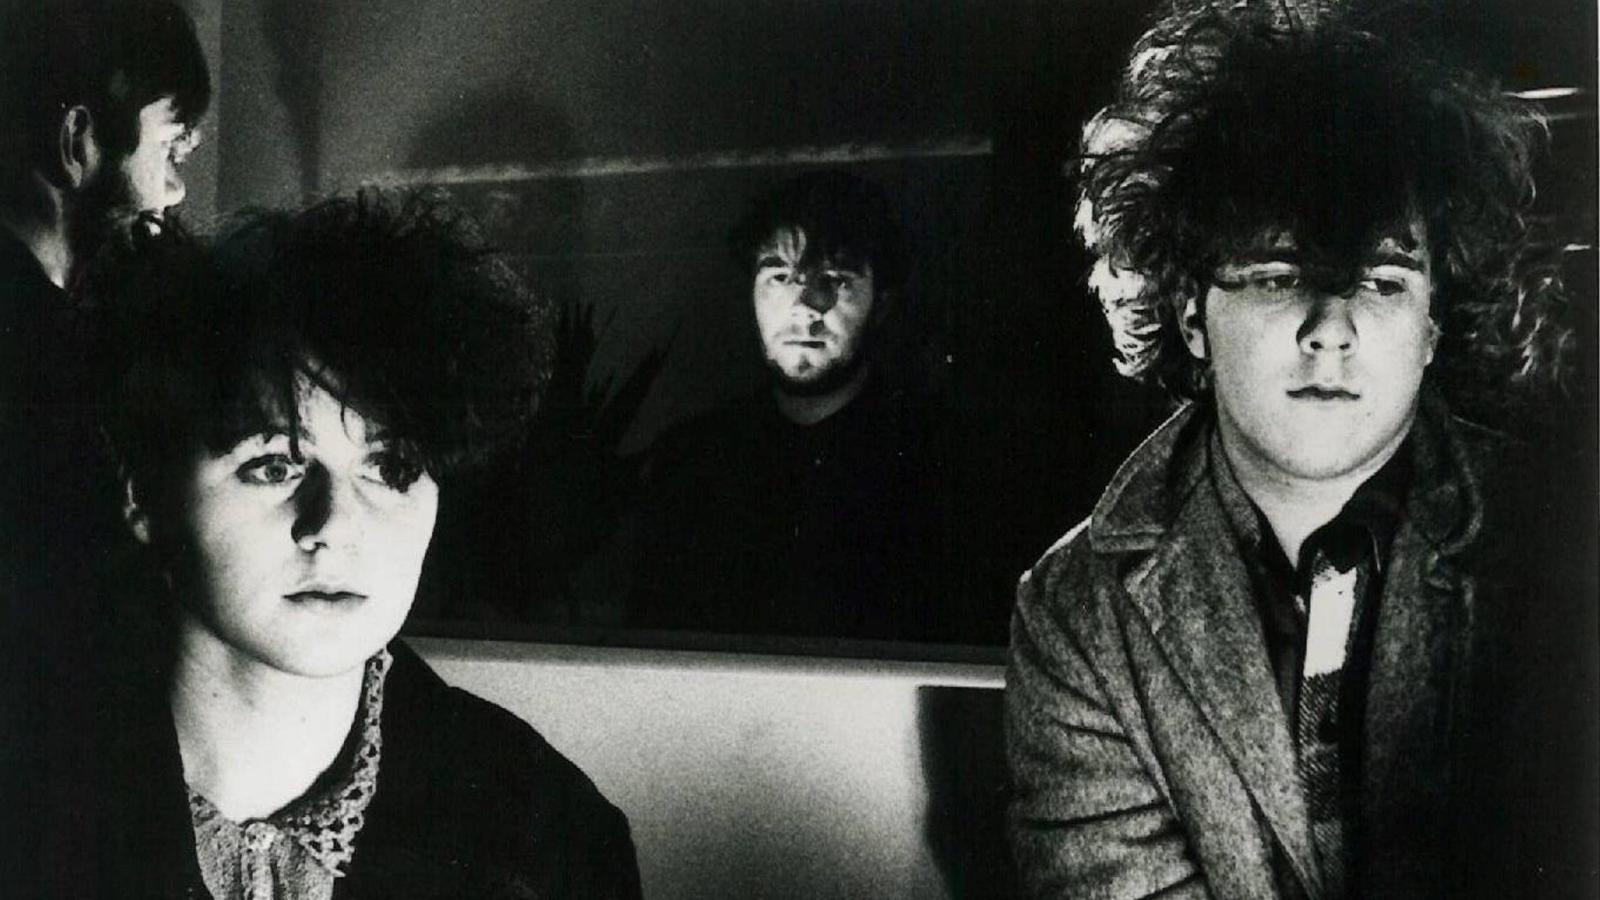 Head Over Heels From The Cocteau Twins